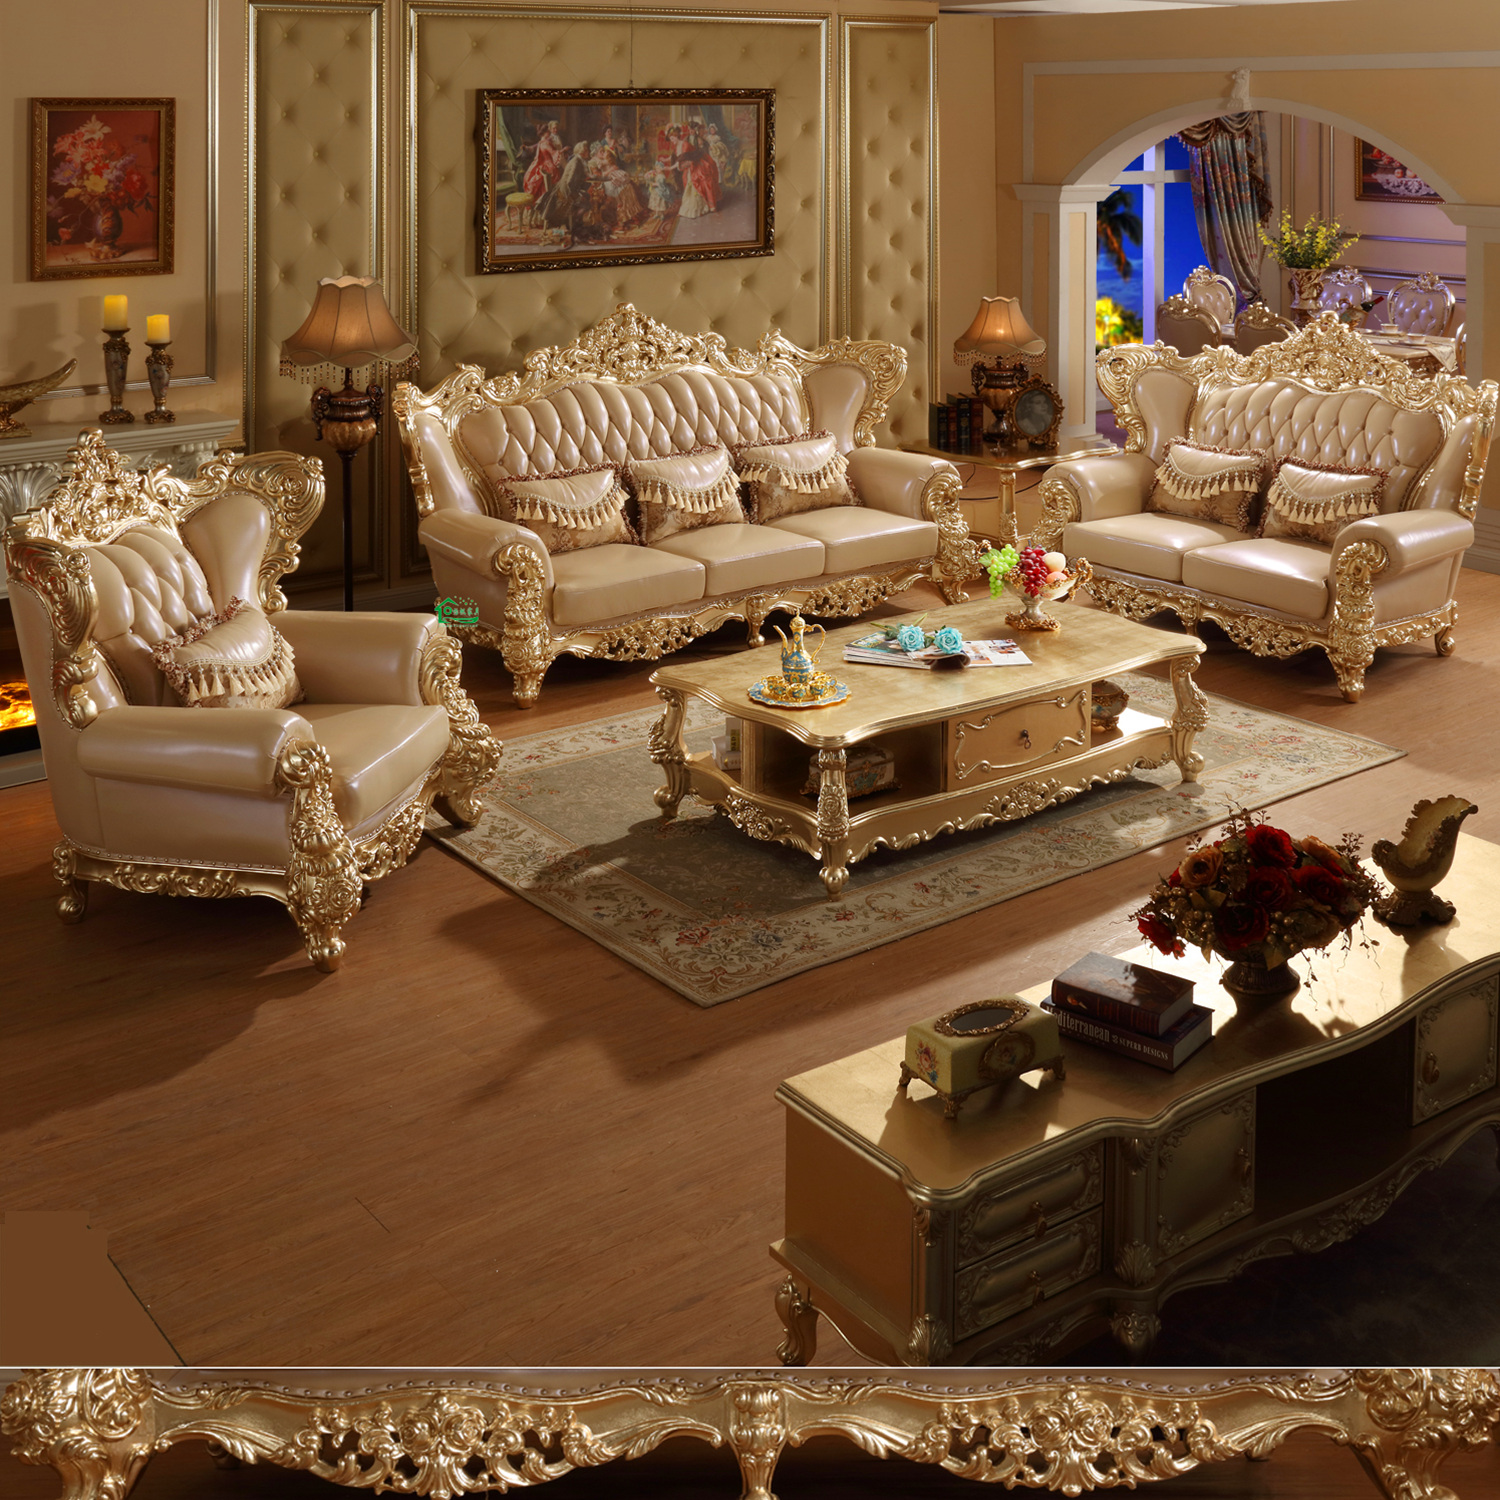 Who Buys Furniture: 526 Classic Leather Sofa With Cabinets For Living Room